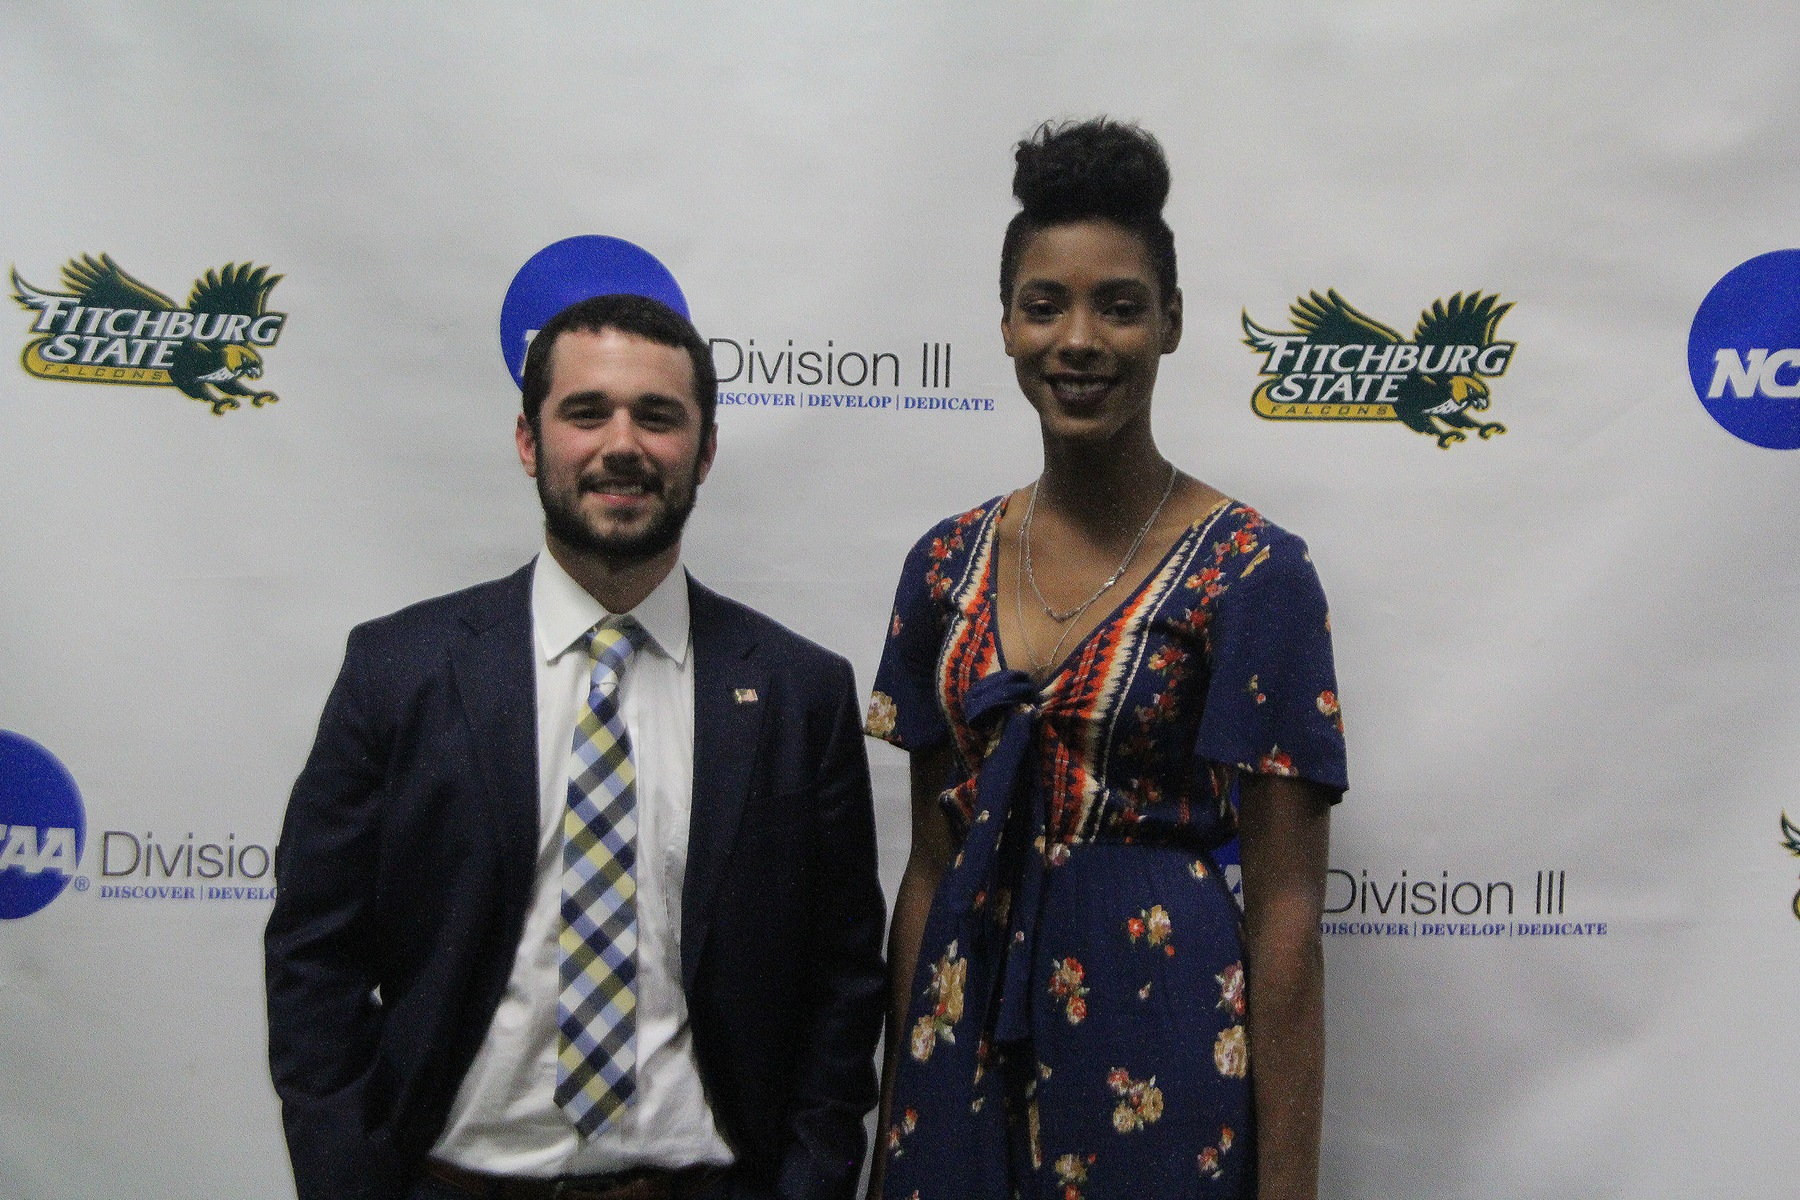 Fitchburg State Hosts Annual Athletics Awards Banquet